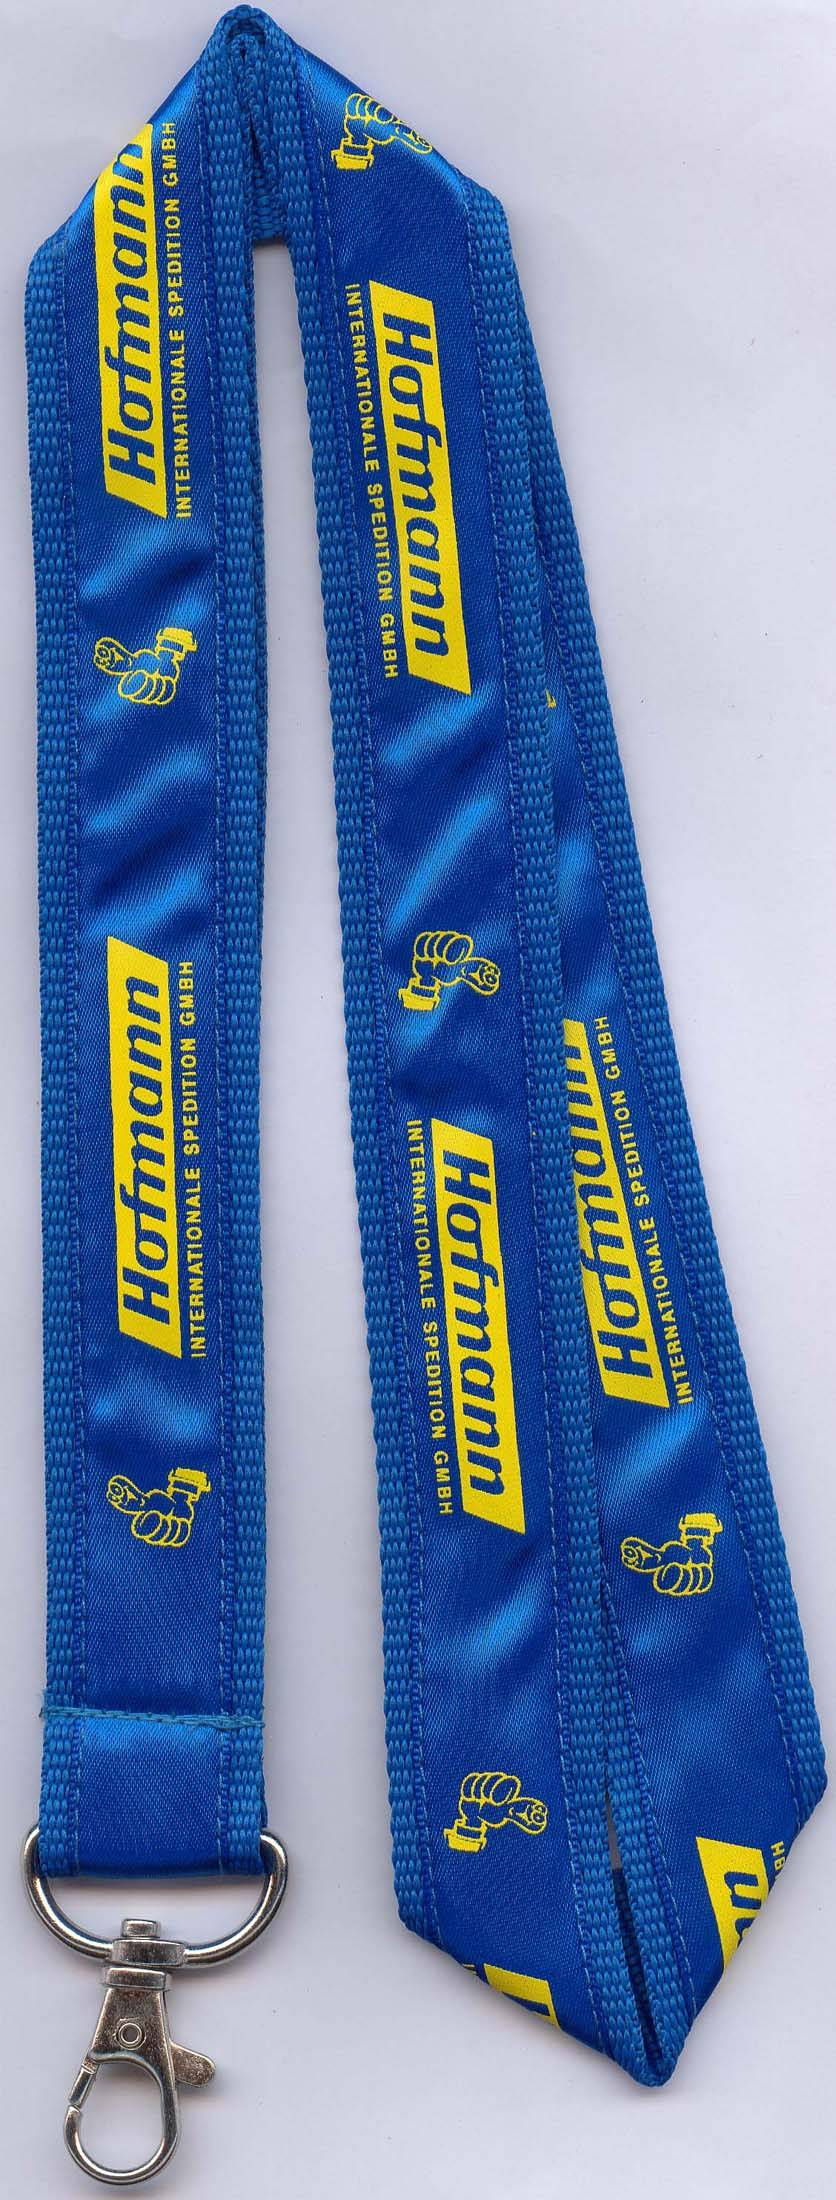 Ribbon Silk-screened Lanyards